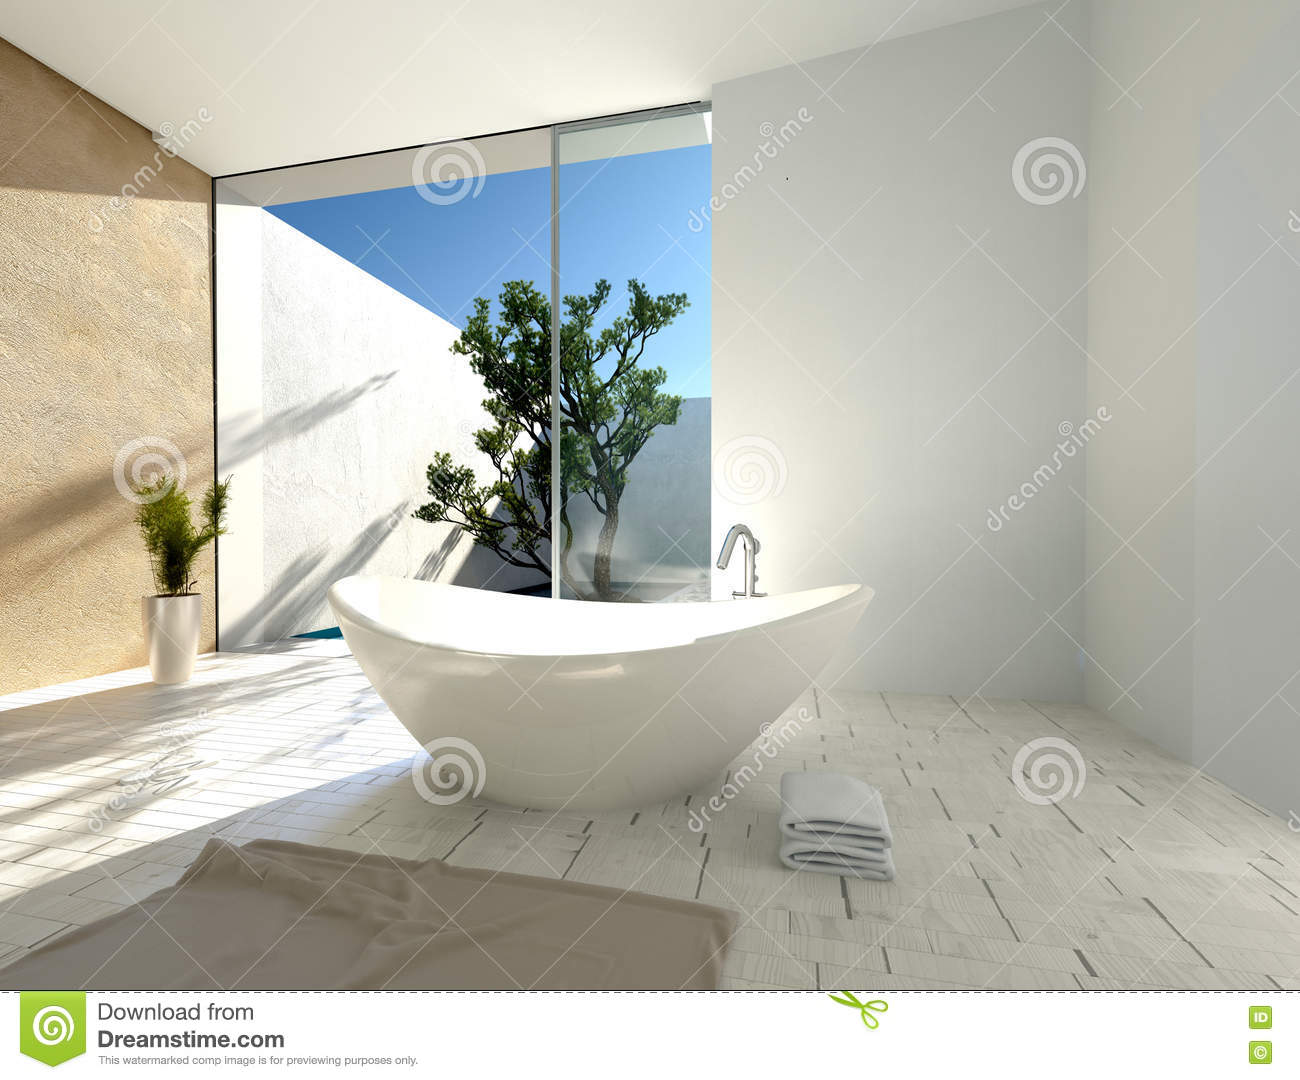 stylish modern boat shaped bathtub stock illustration illustrationstylish modern boat shaped bathtub sunny tropical bathroom white beige walls parquet floor glass door leading to 55142517 jpg